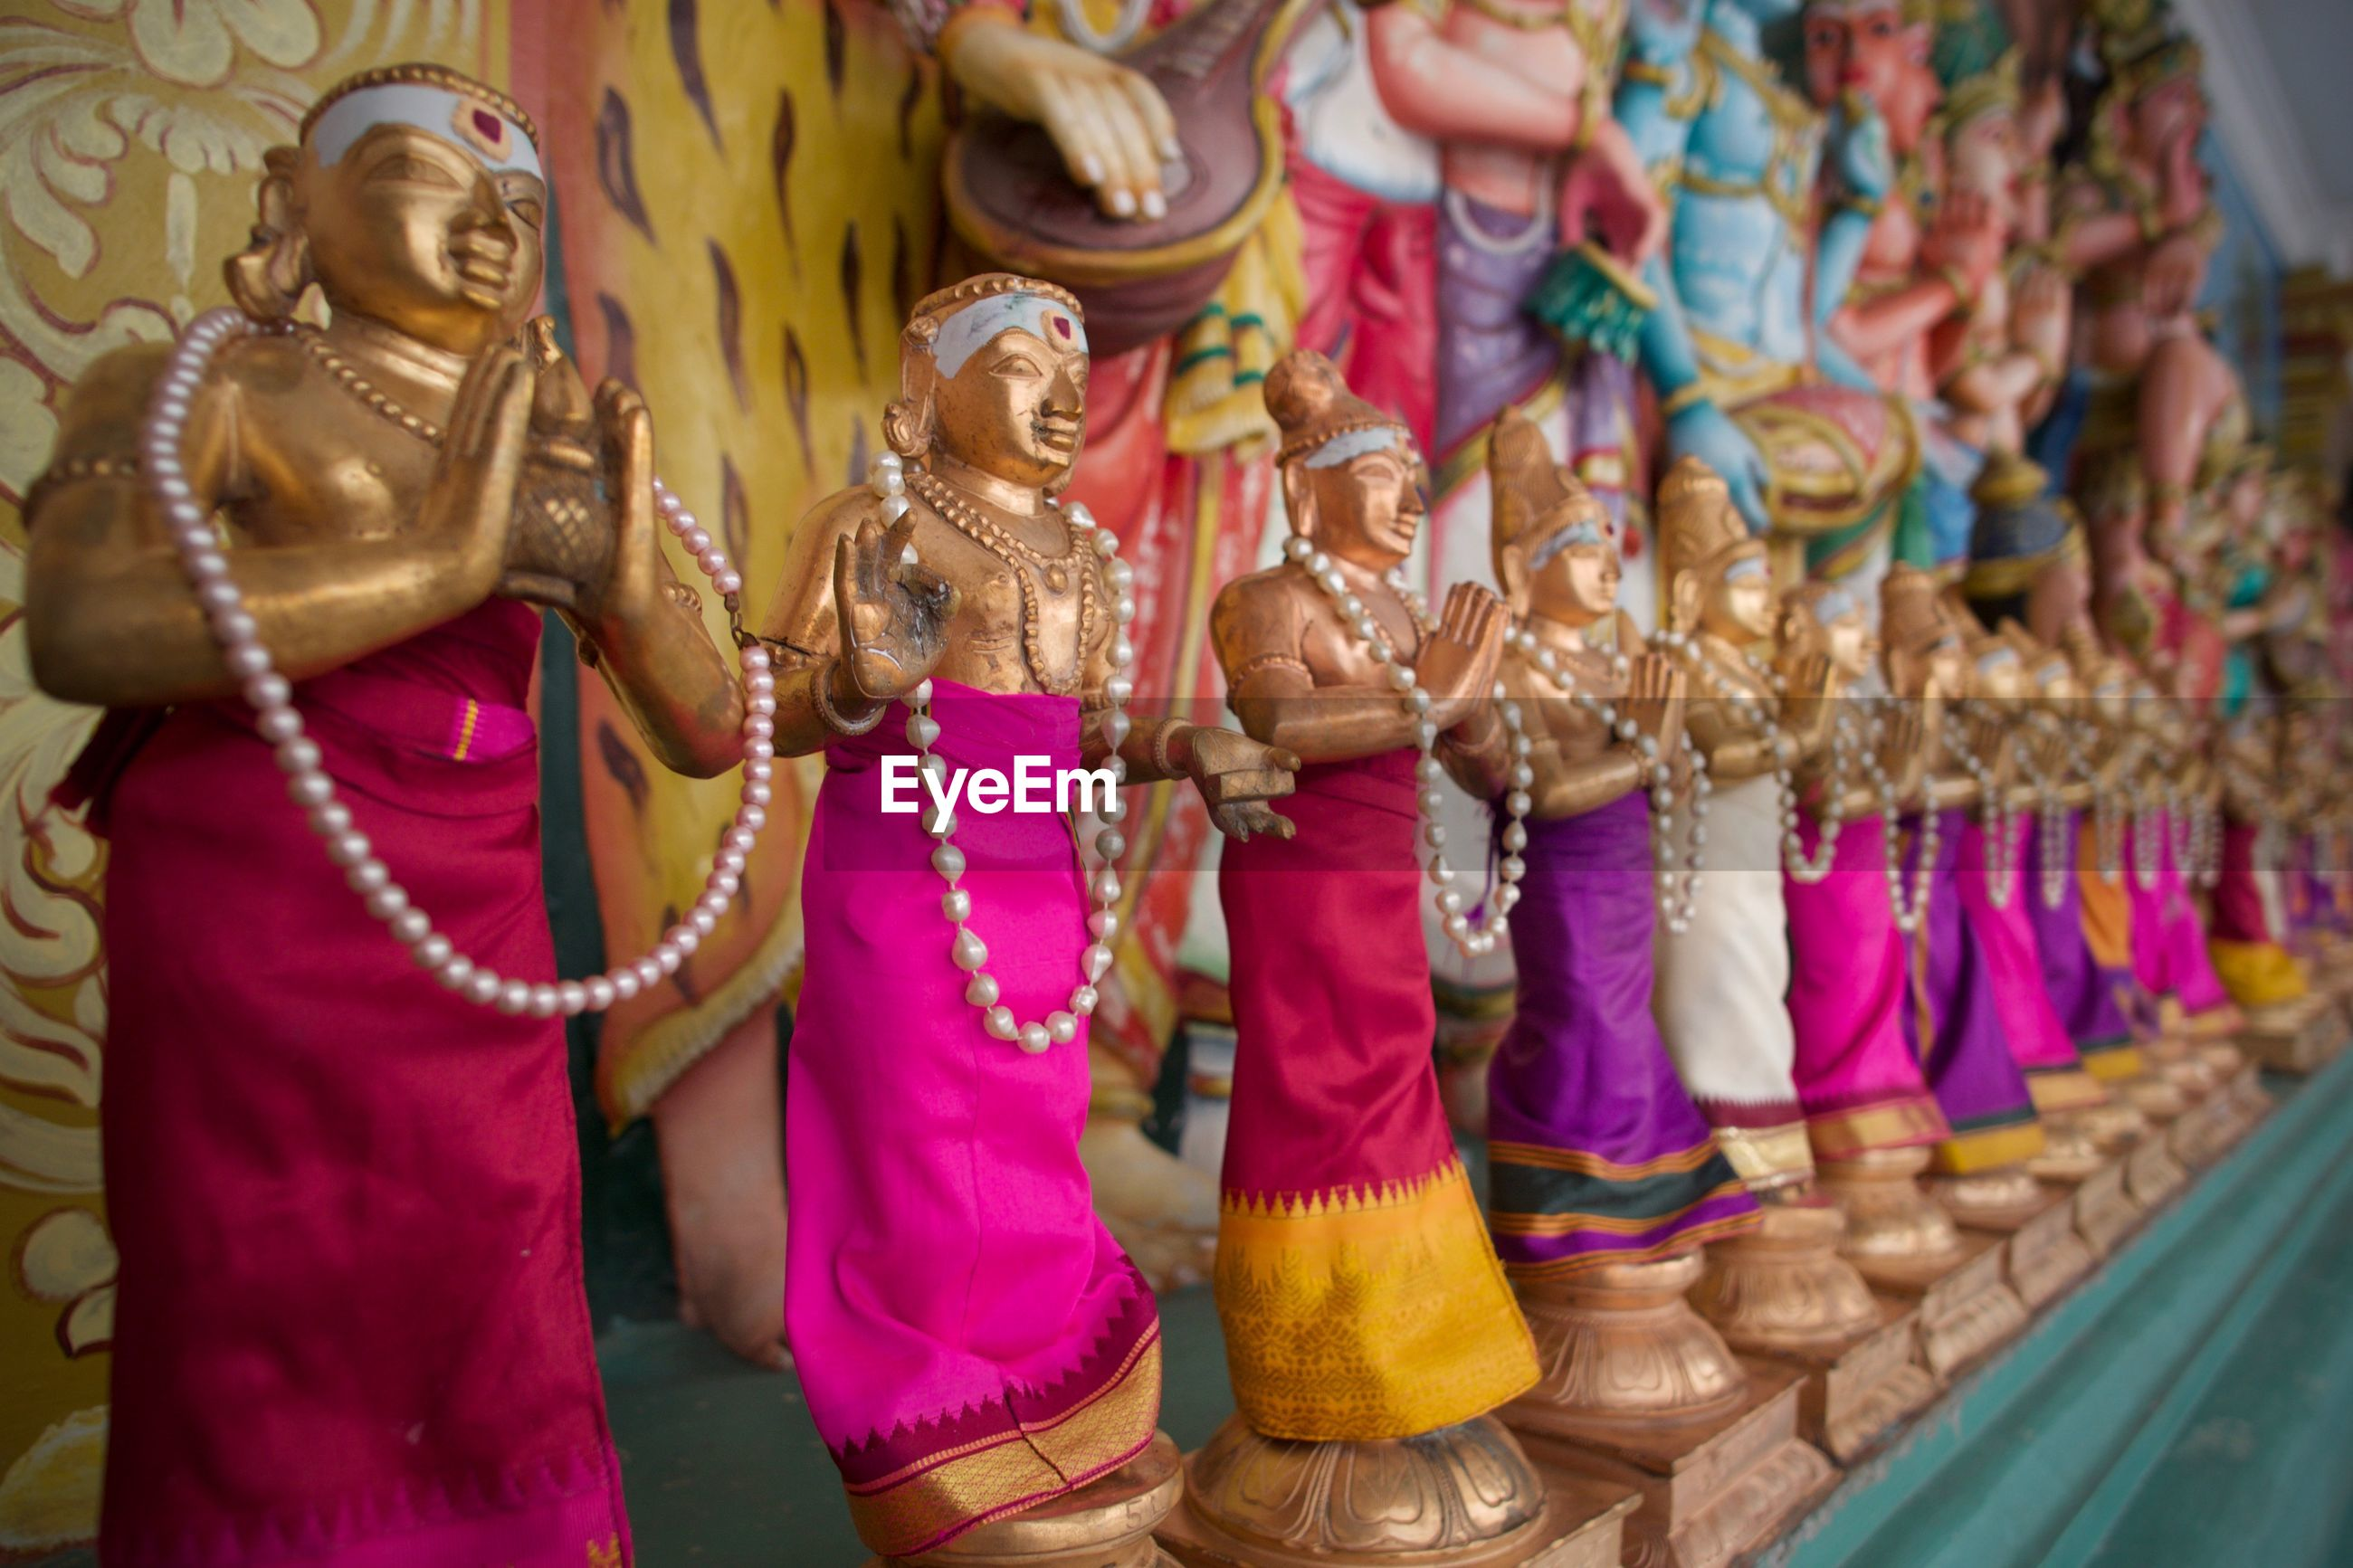 LOW ANGLE VIEW OF STATUES AT TEMPLE